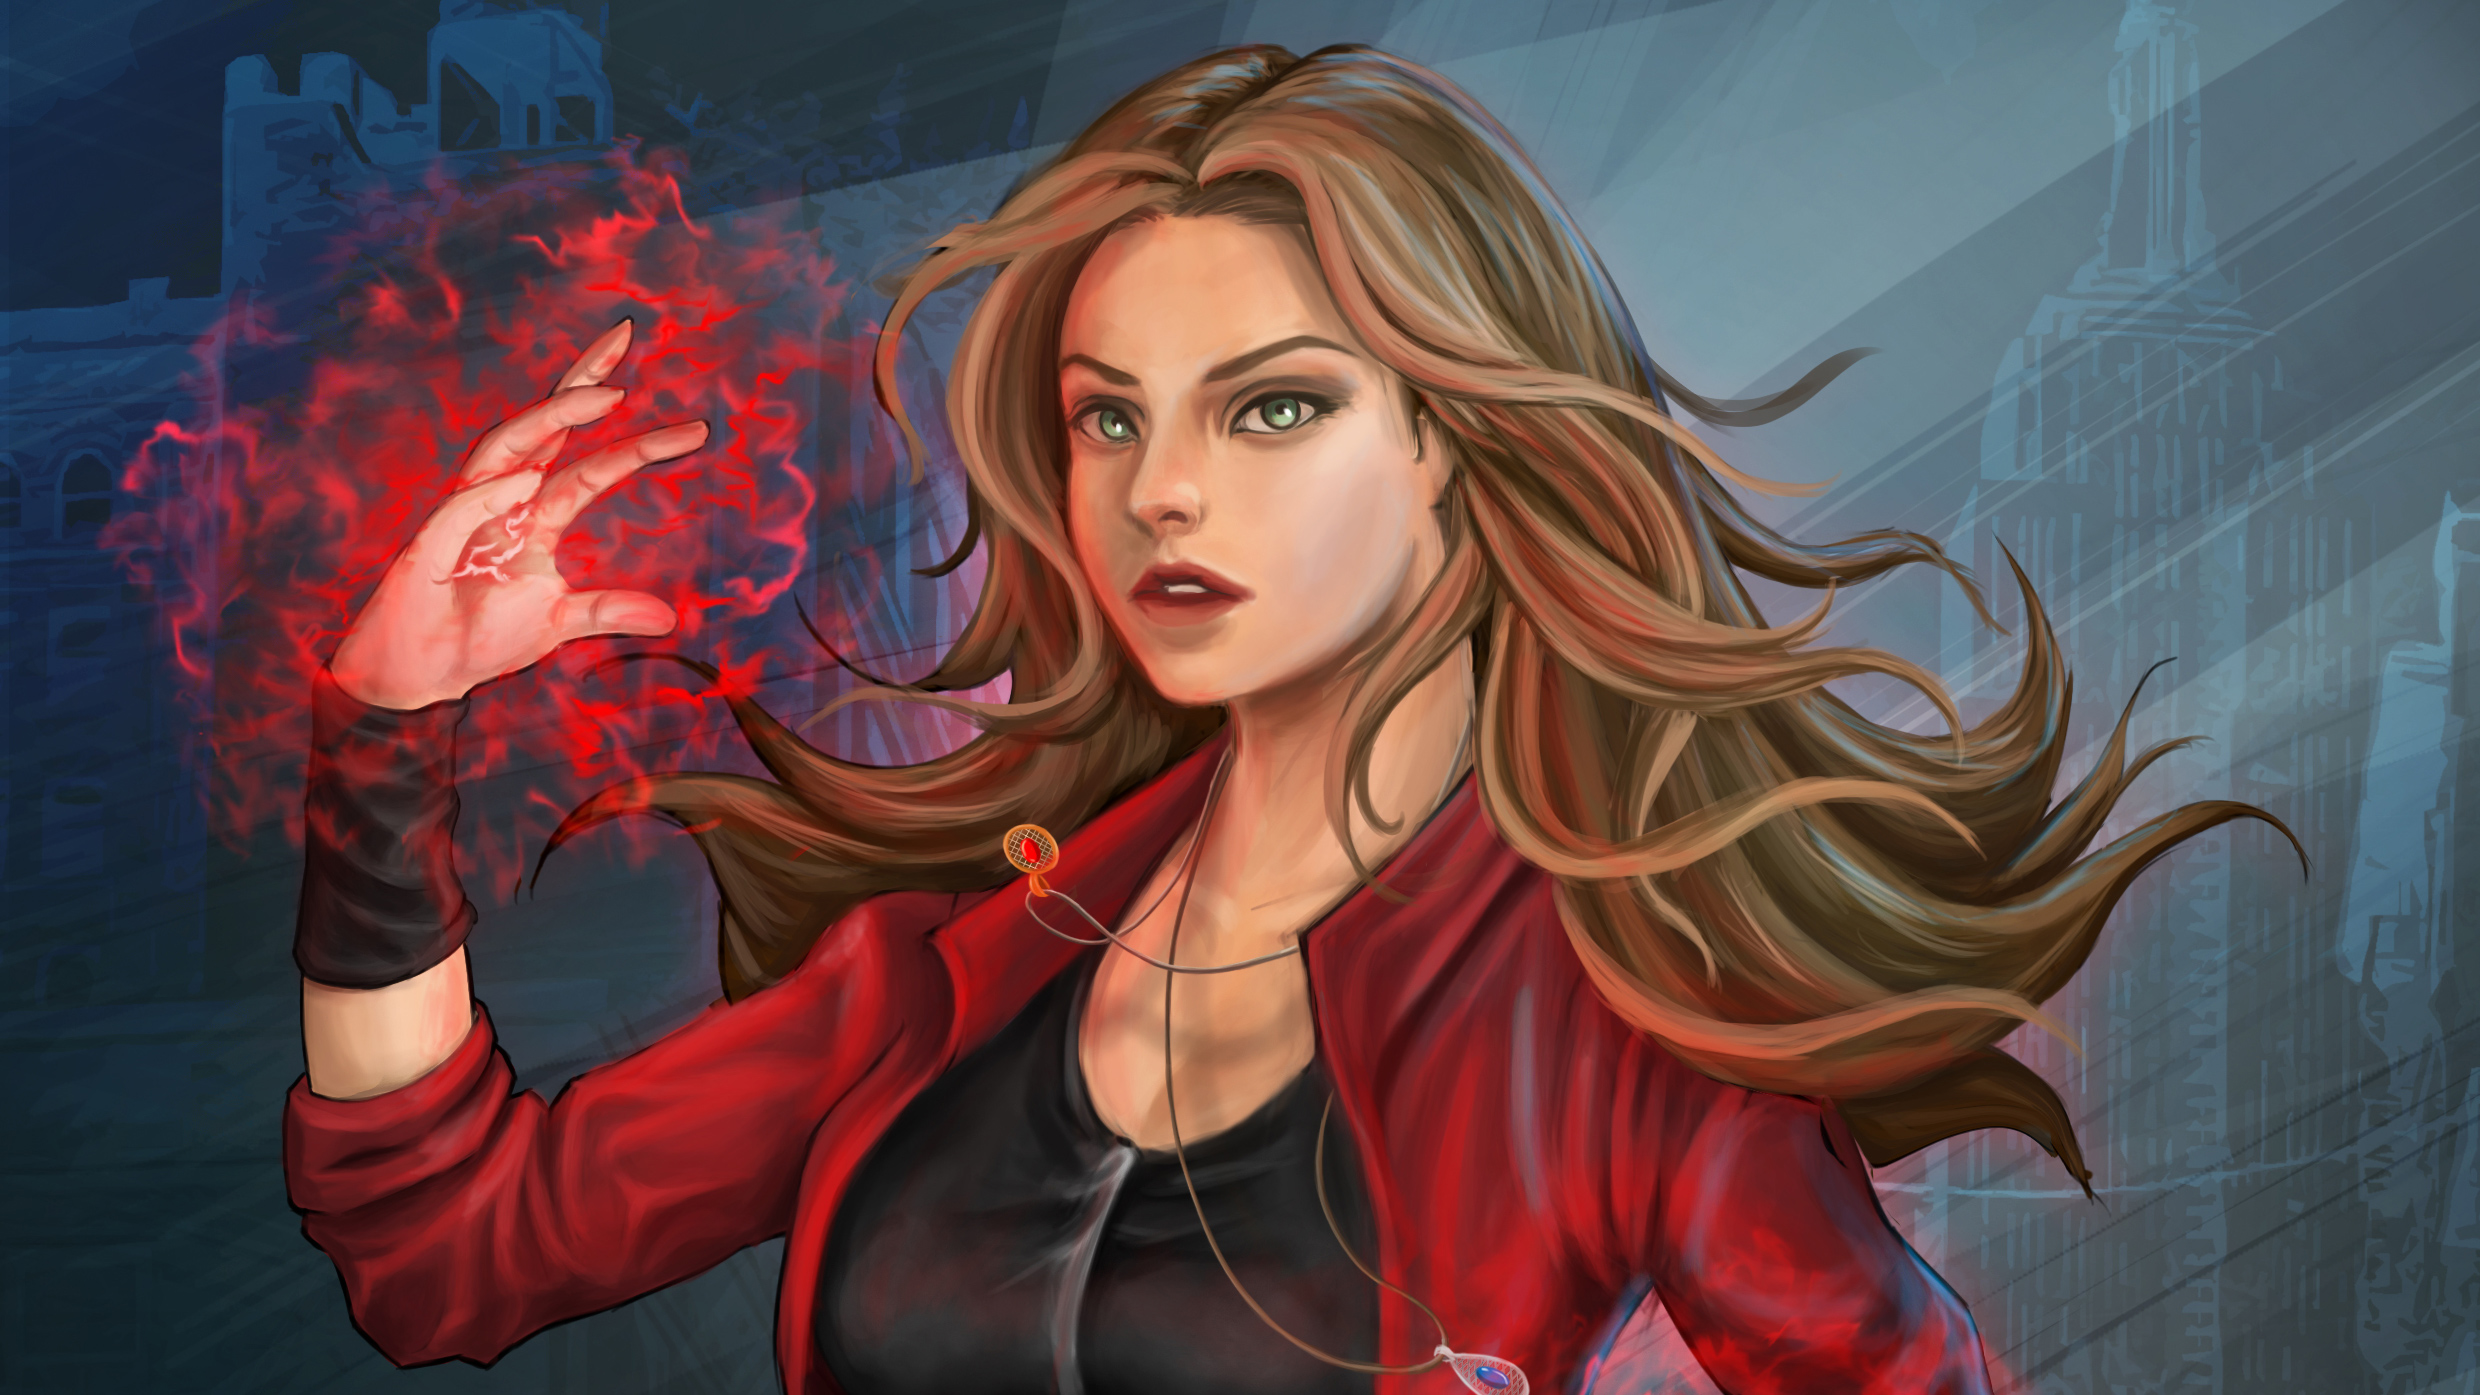 Scarlet Witch Artworks Hd Superheroes 4k Wallpapers Images Backgrounds Photos And Pictures